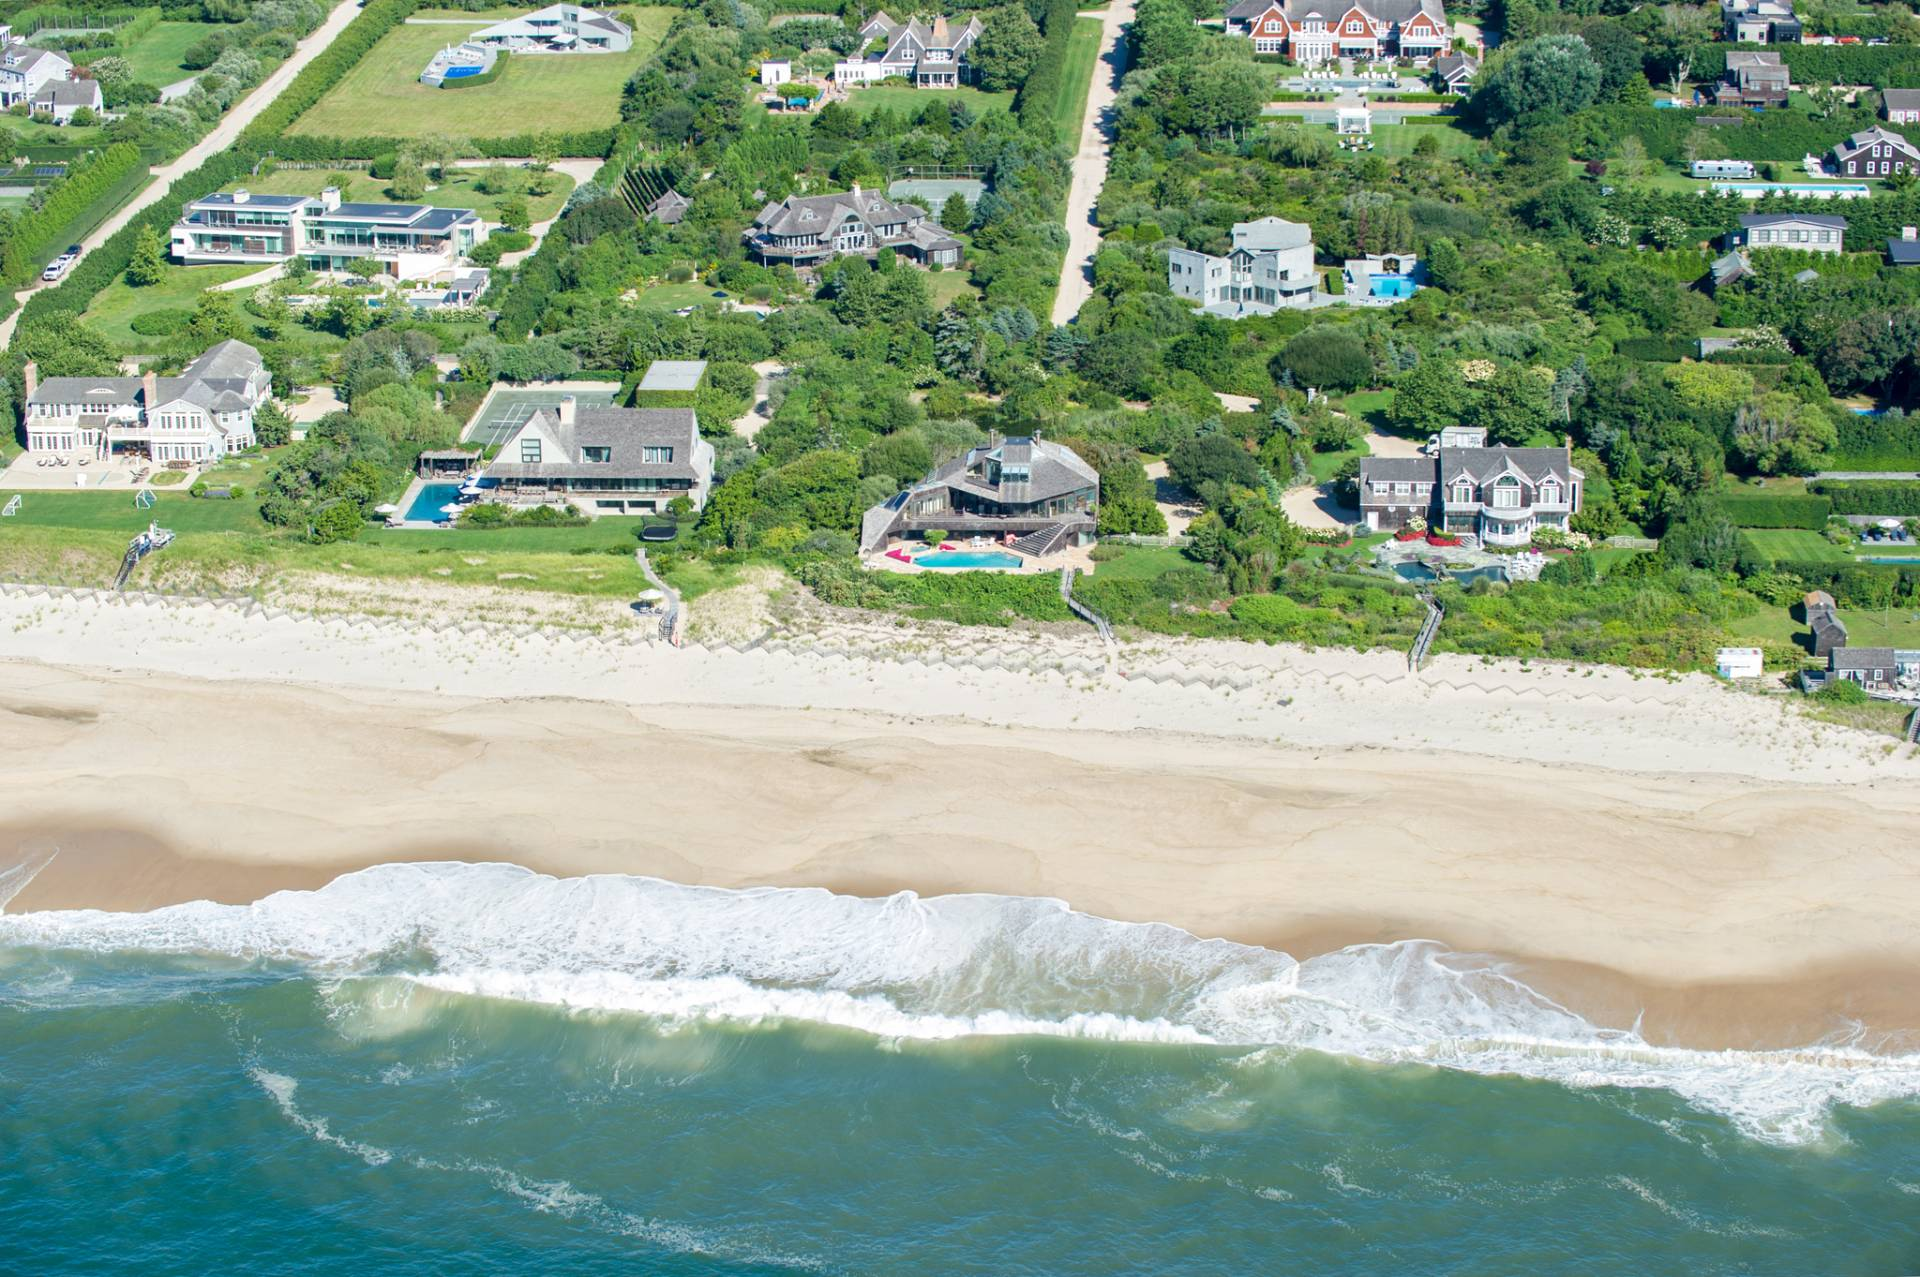 Single Family Home for Sale at Ocean Breezes And Private Ocean Beach Access In Sagaponack 797 Daniels Lane, Sagaponack, New York